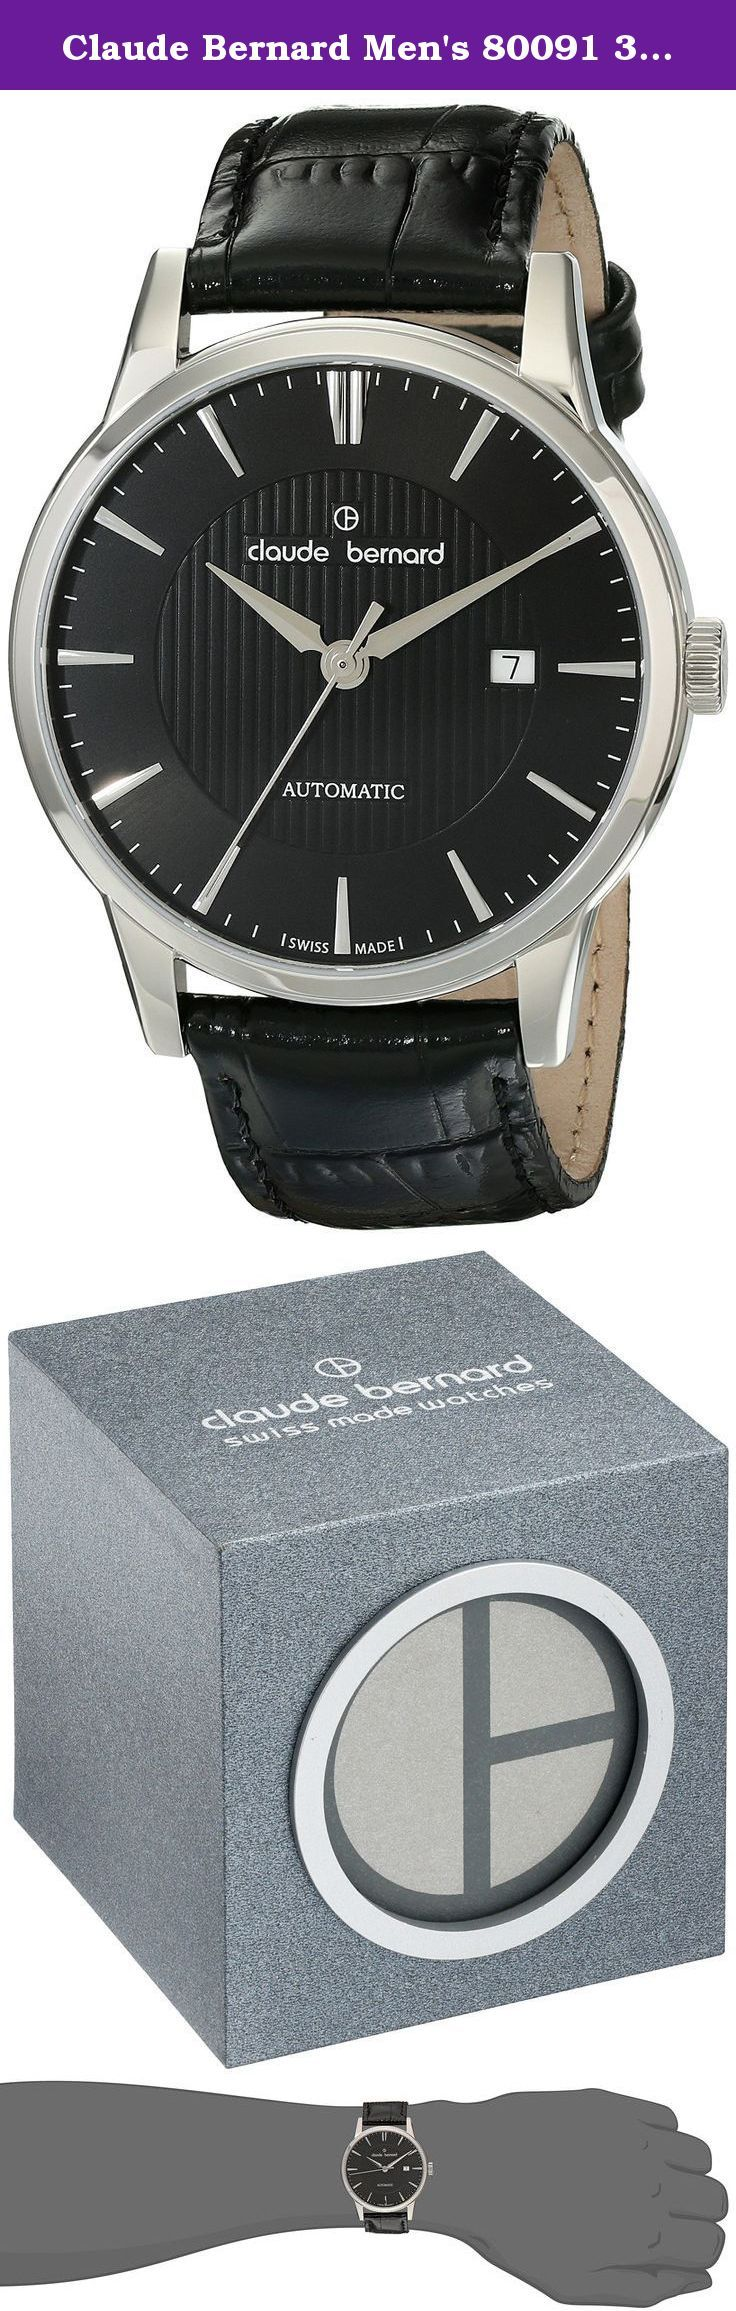 Claude Bernard Men's 80091 3 NIN Classic Automatic Analog Display Swiss Automatic Black Watch. This Swiss Made Claude Bernard dress watch features a Swiss ETA 2824-2 automatic (self-winding) movement housed in a 42mm diameter stainless steel case. The black dial has a rich looking stripe pattern in the center and the applied hour markers and hands are an elegant silver tone. A small date window is at the 3:00 position. Power reserve is 38 to 42 hours on a full wind. If you wear it daily…